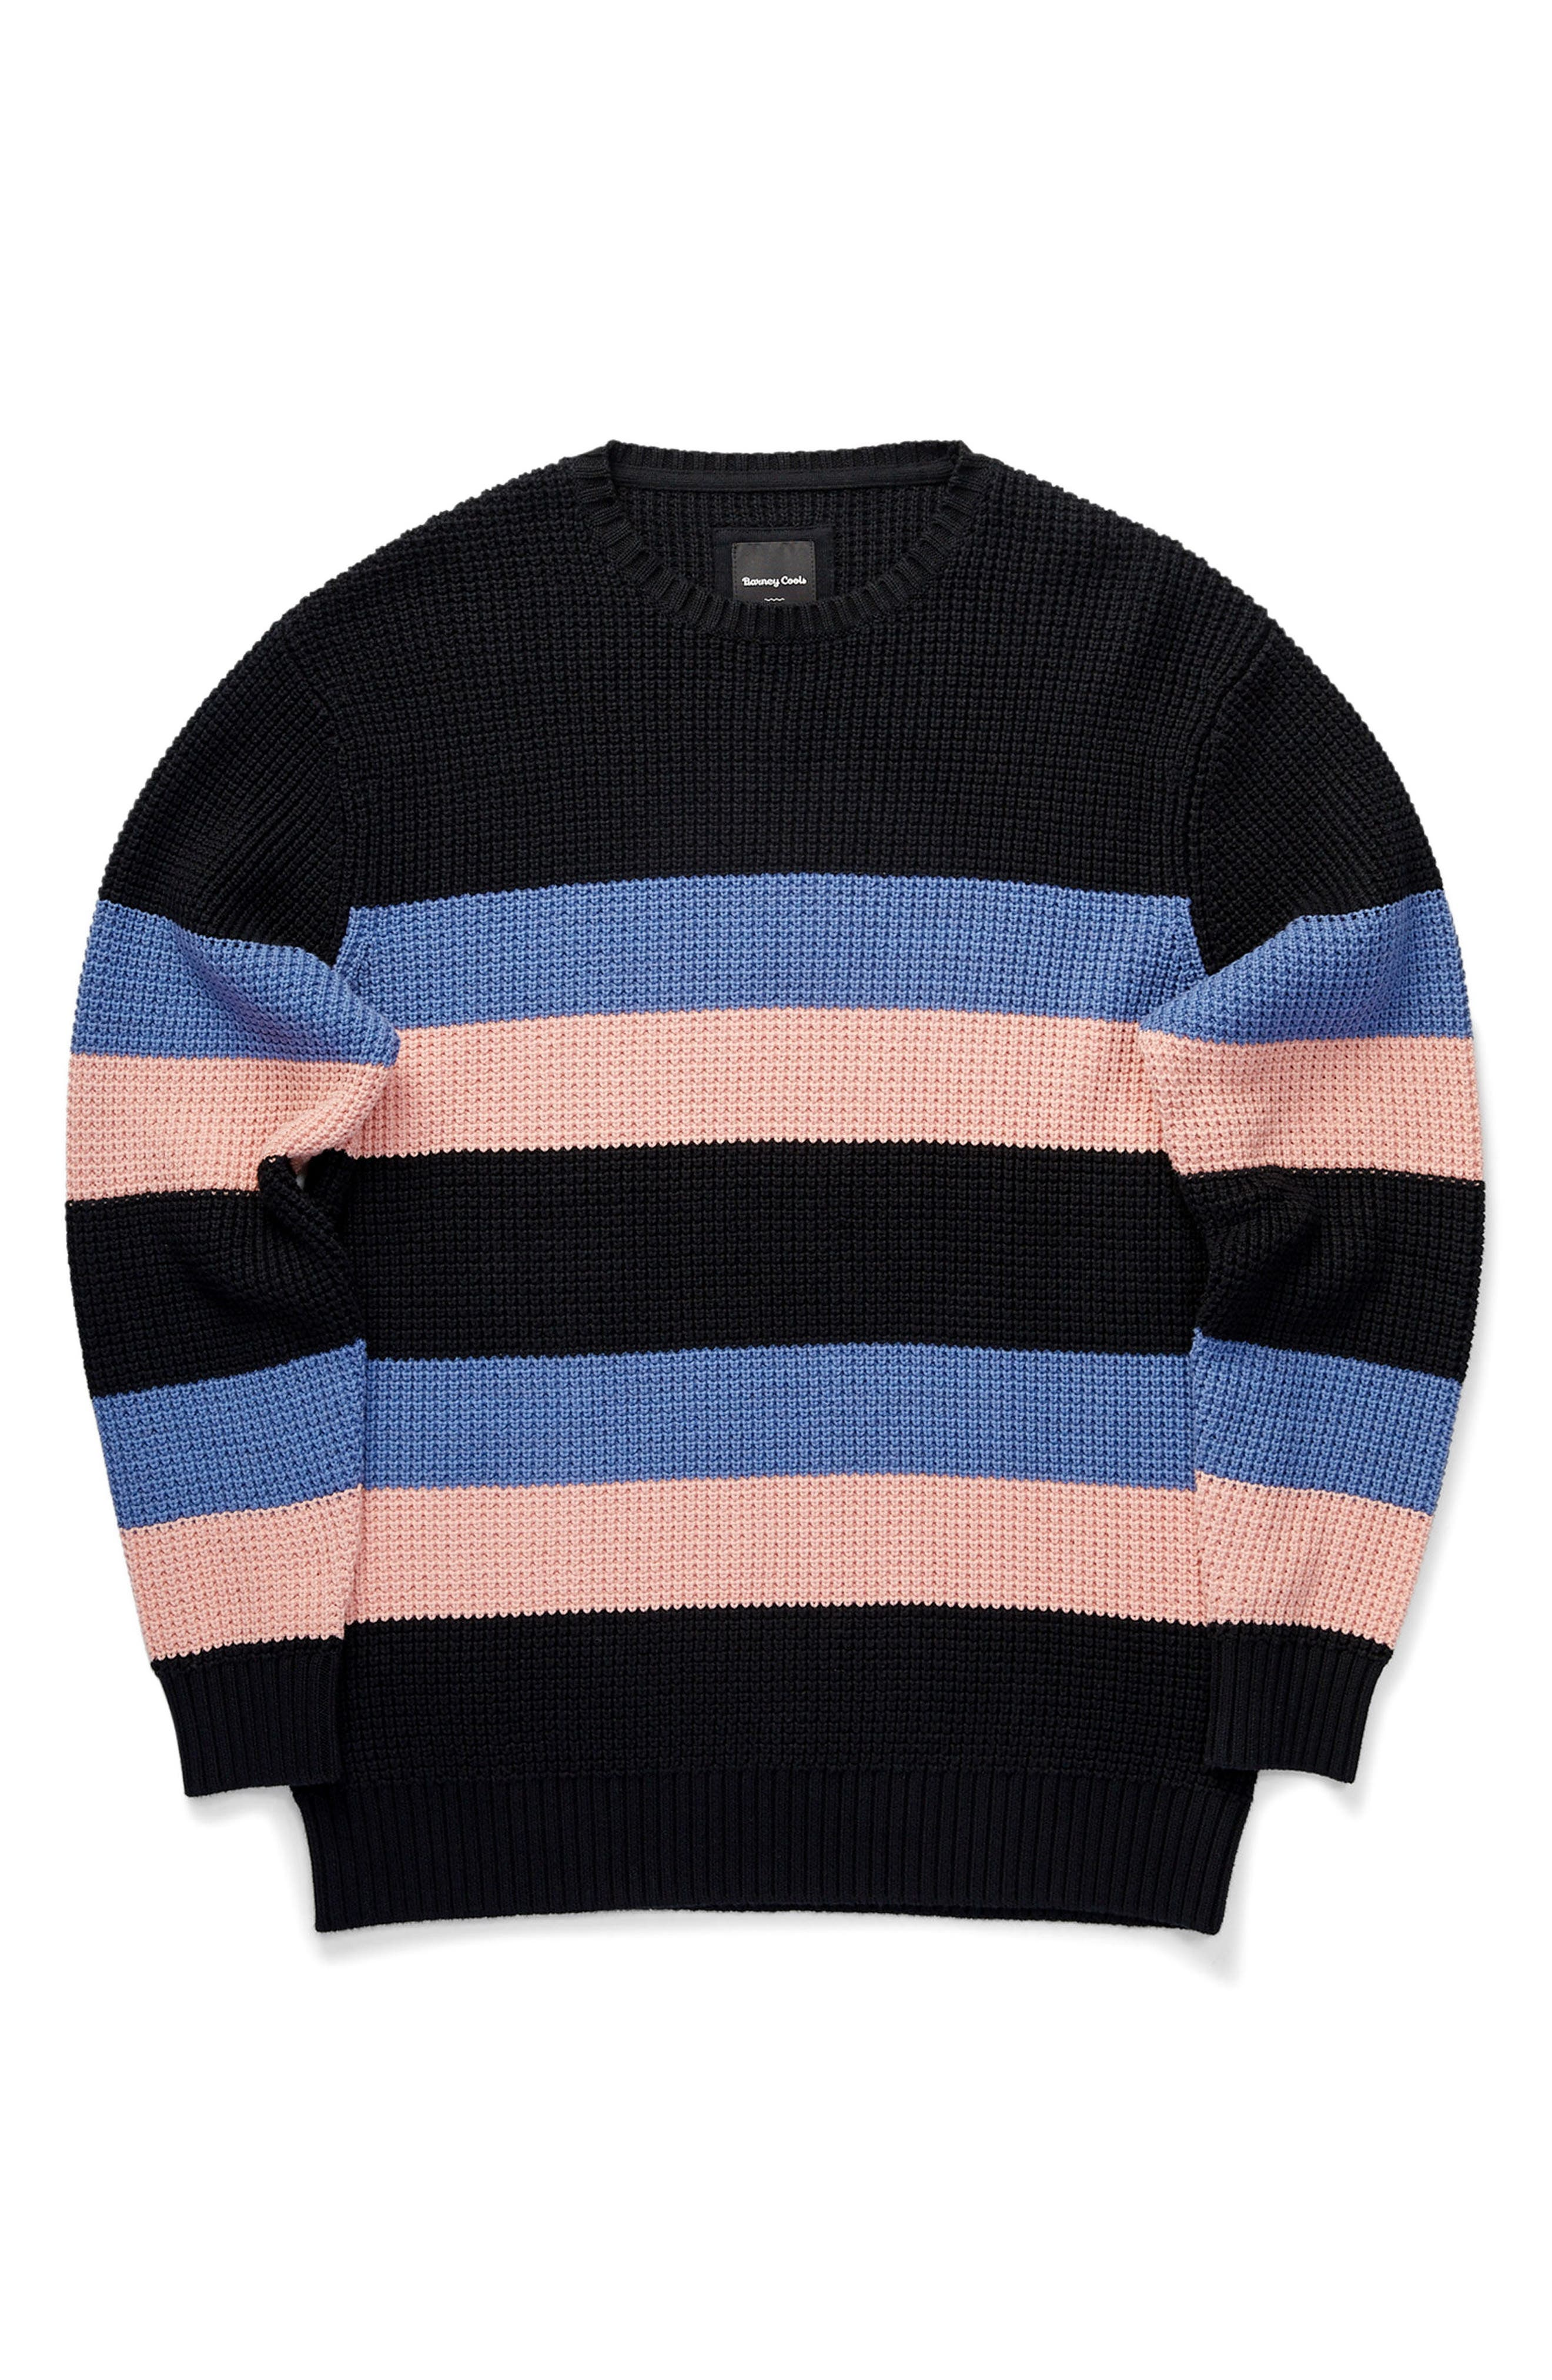 Rugby Stripe Sweater,                             Alternate thumbnail 6, color,                             Black/ Pink